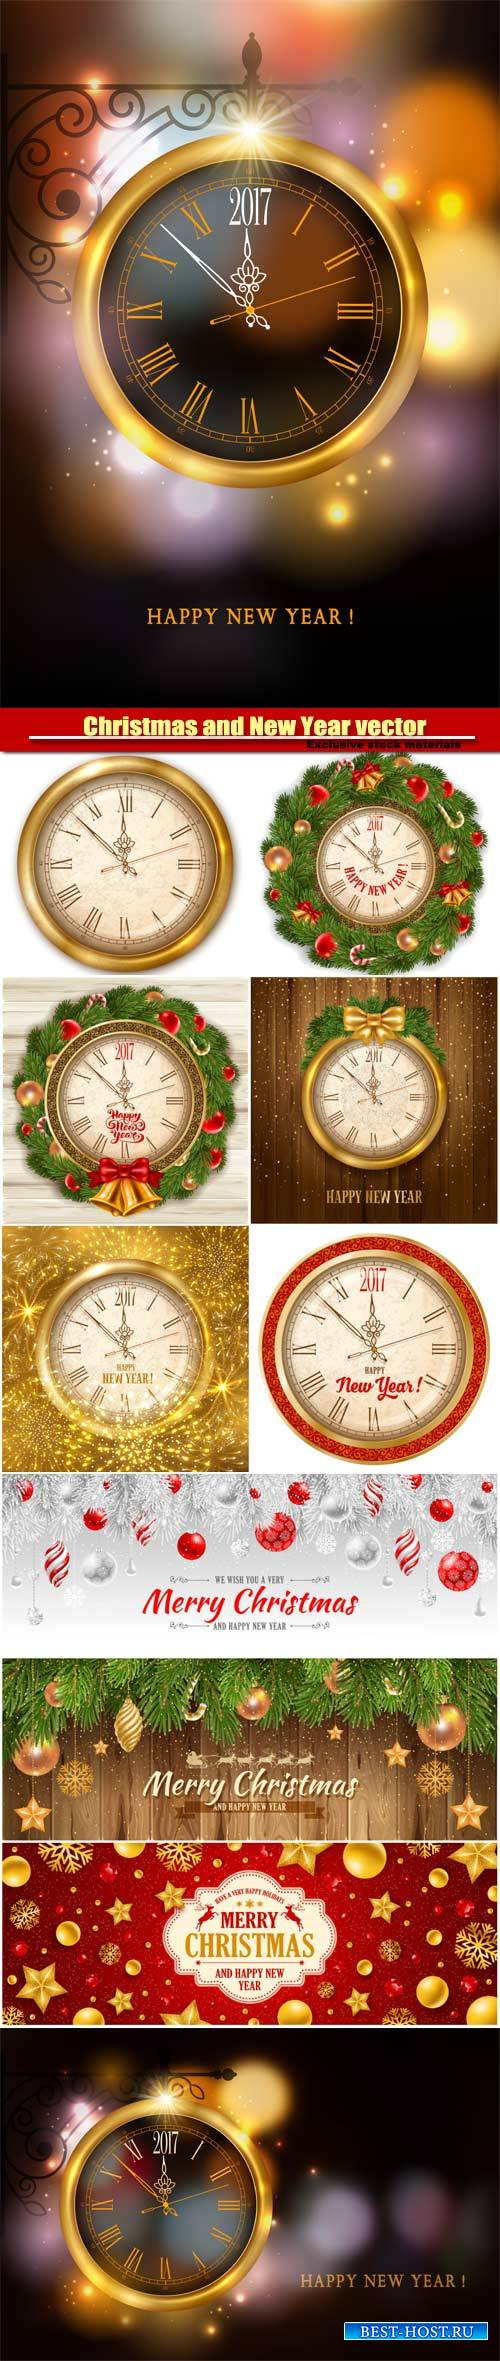 Christmas and New Year vector, clock on bracket with 2017